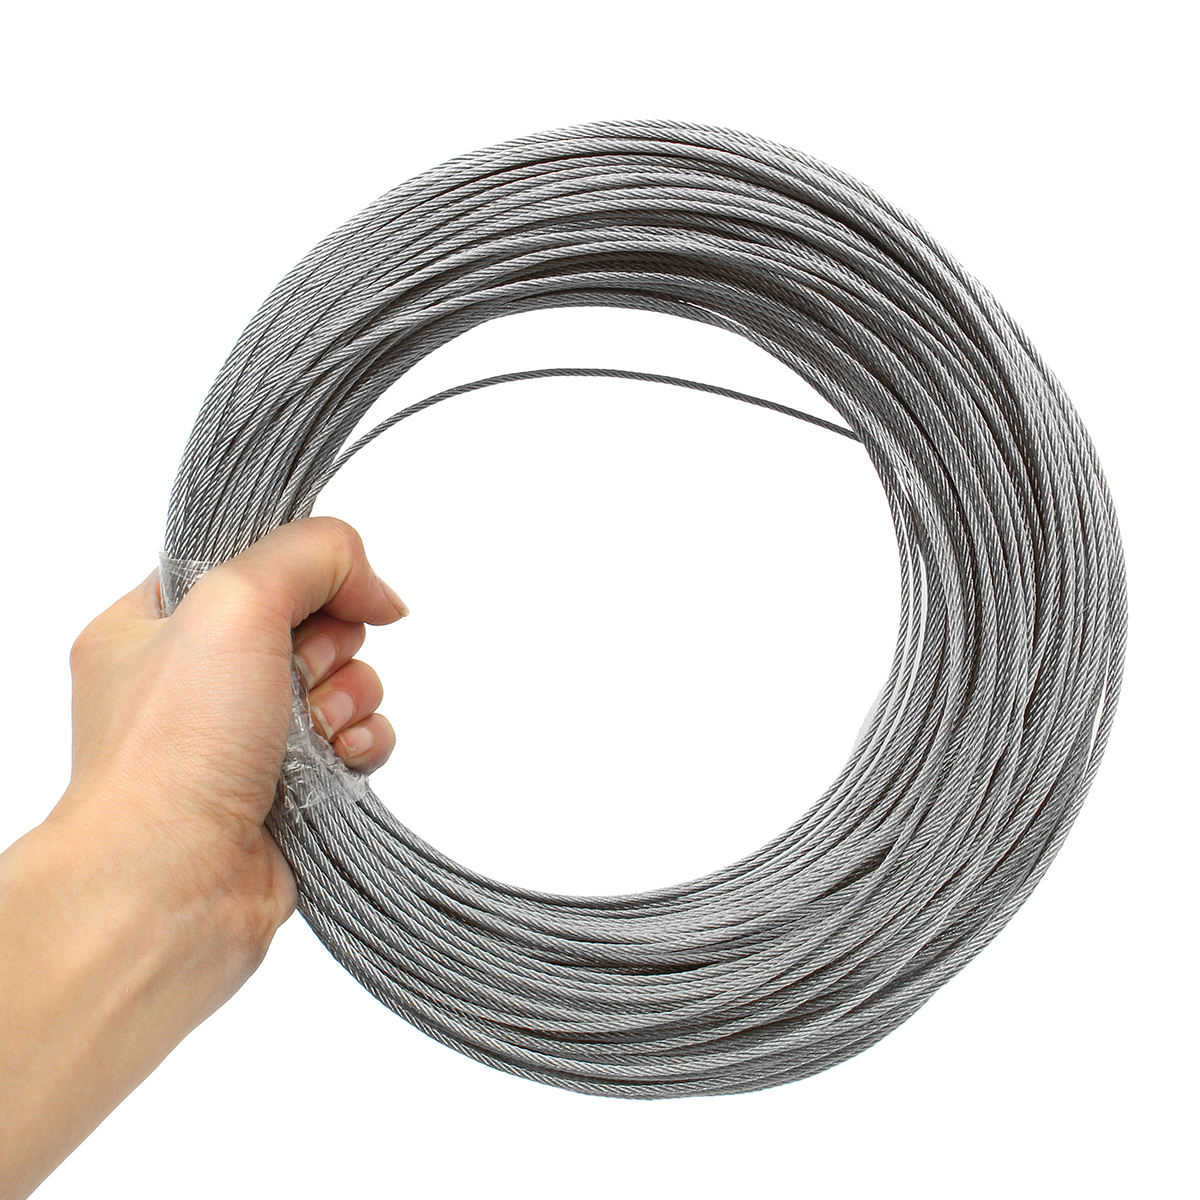 Stainless Steel Wire Rope Tensile Diameter 2mm Structure Cable Fishing Lifting Cable 1M/ 5M/ 10M/15M/ 20M/25M/50M/100M